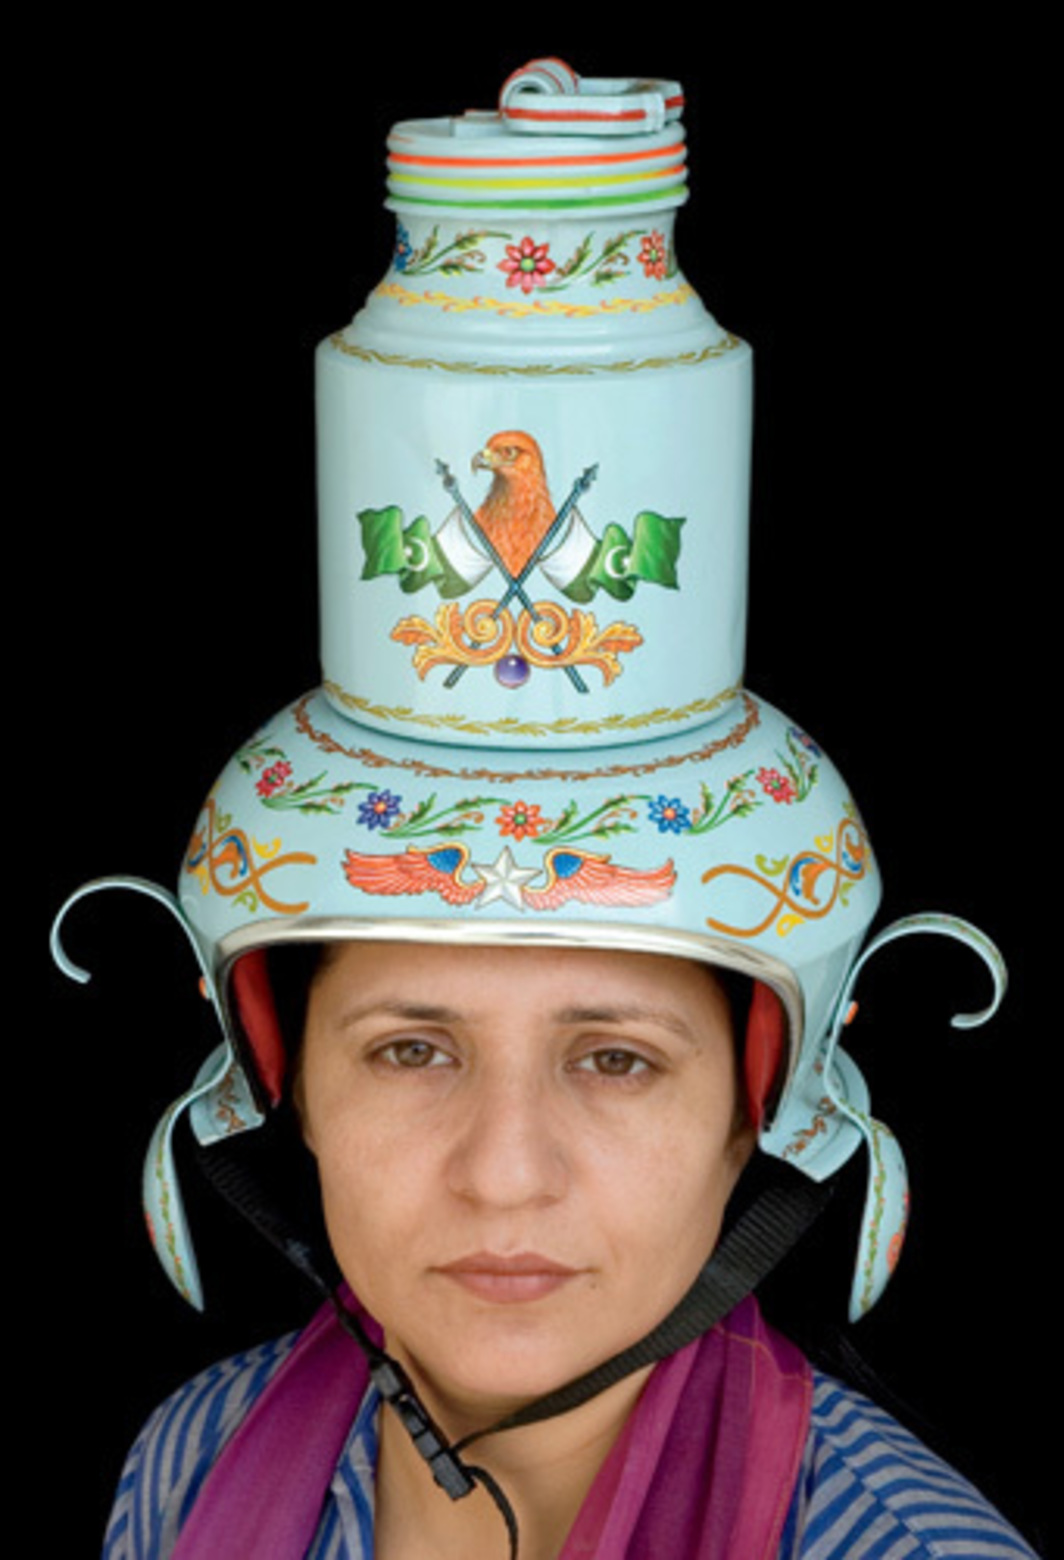 "Adeela Suleman, Feroza (Turqouise), 2005, paint on aluminum cooking utensil, spoons, aluminum jar (burni), foam, cloth, 18 x 10 x 10""."